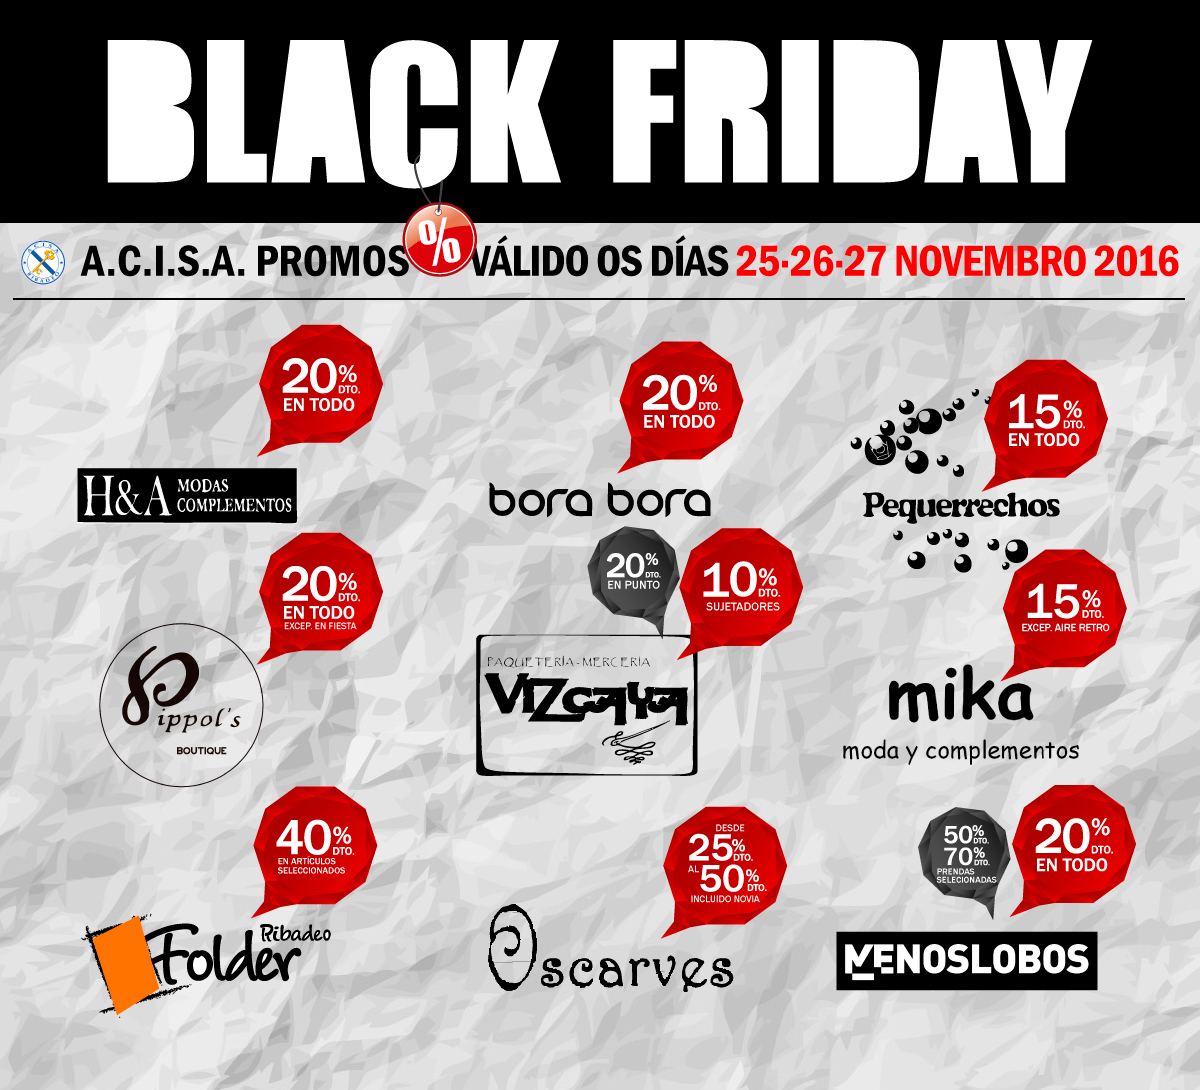 acisaribadeo-noticia-blackfriday-20161123-02